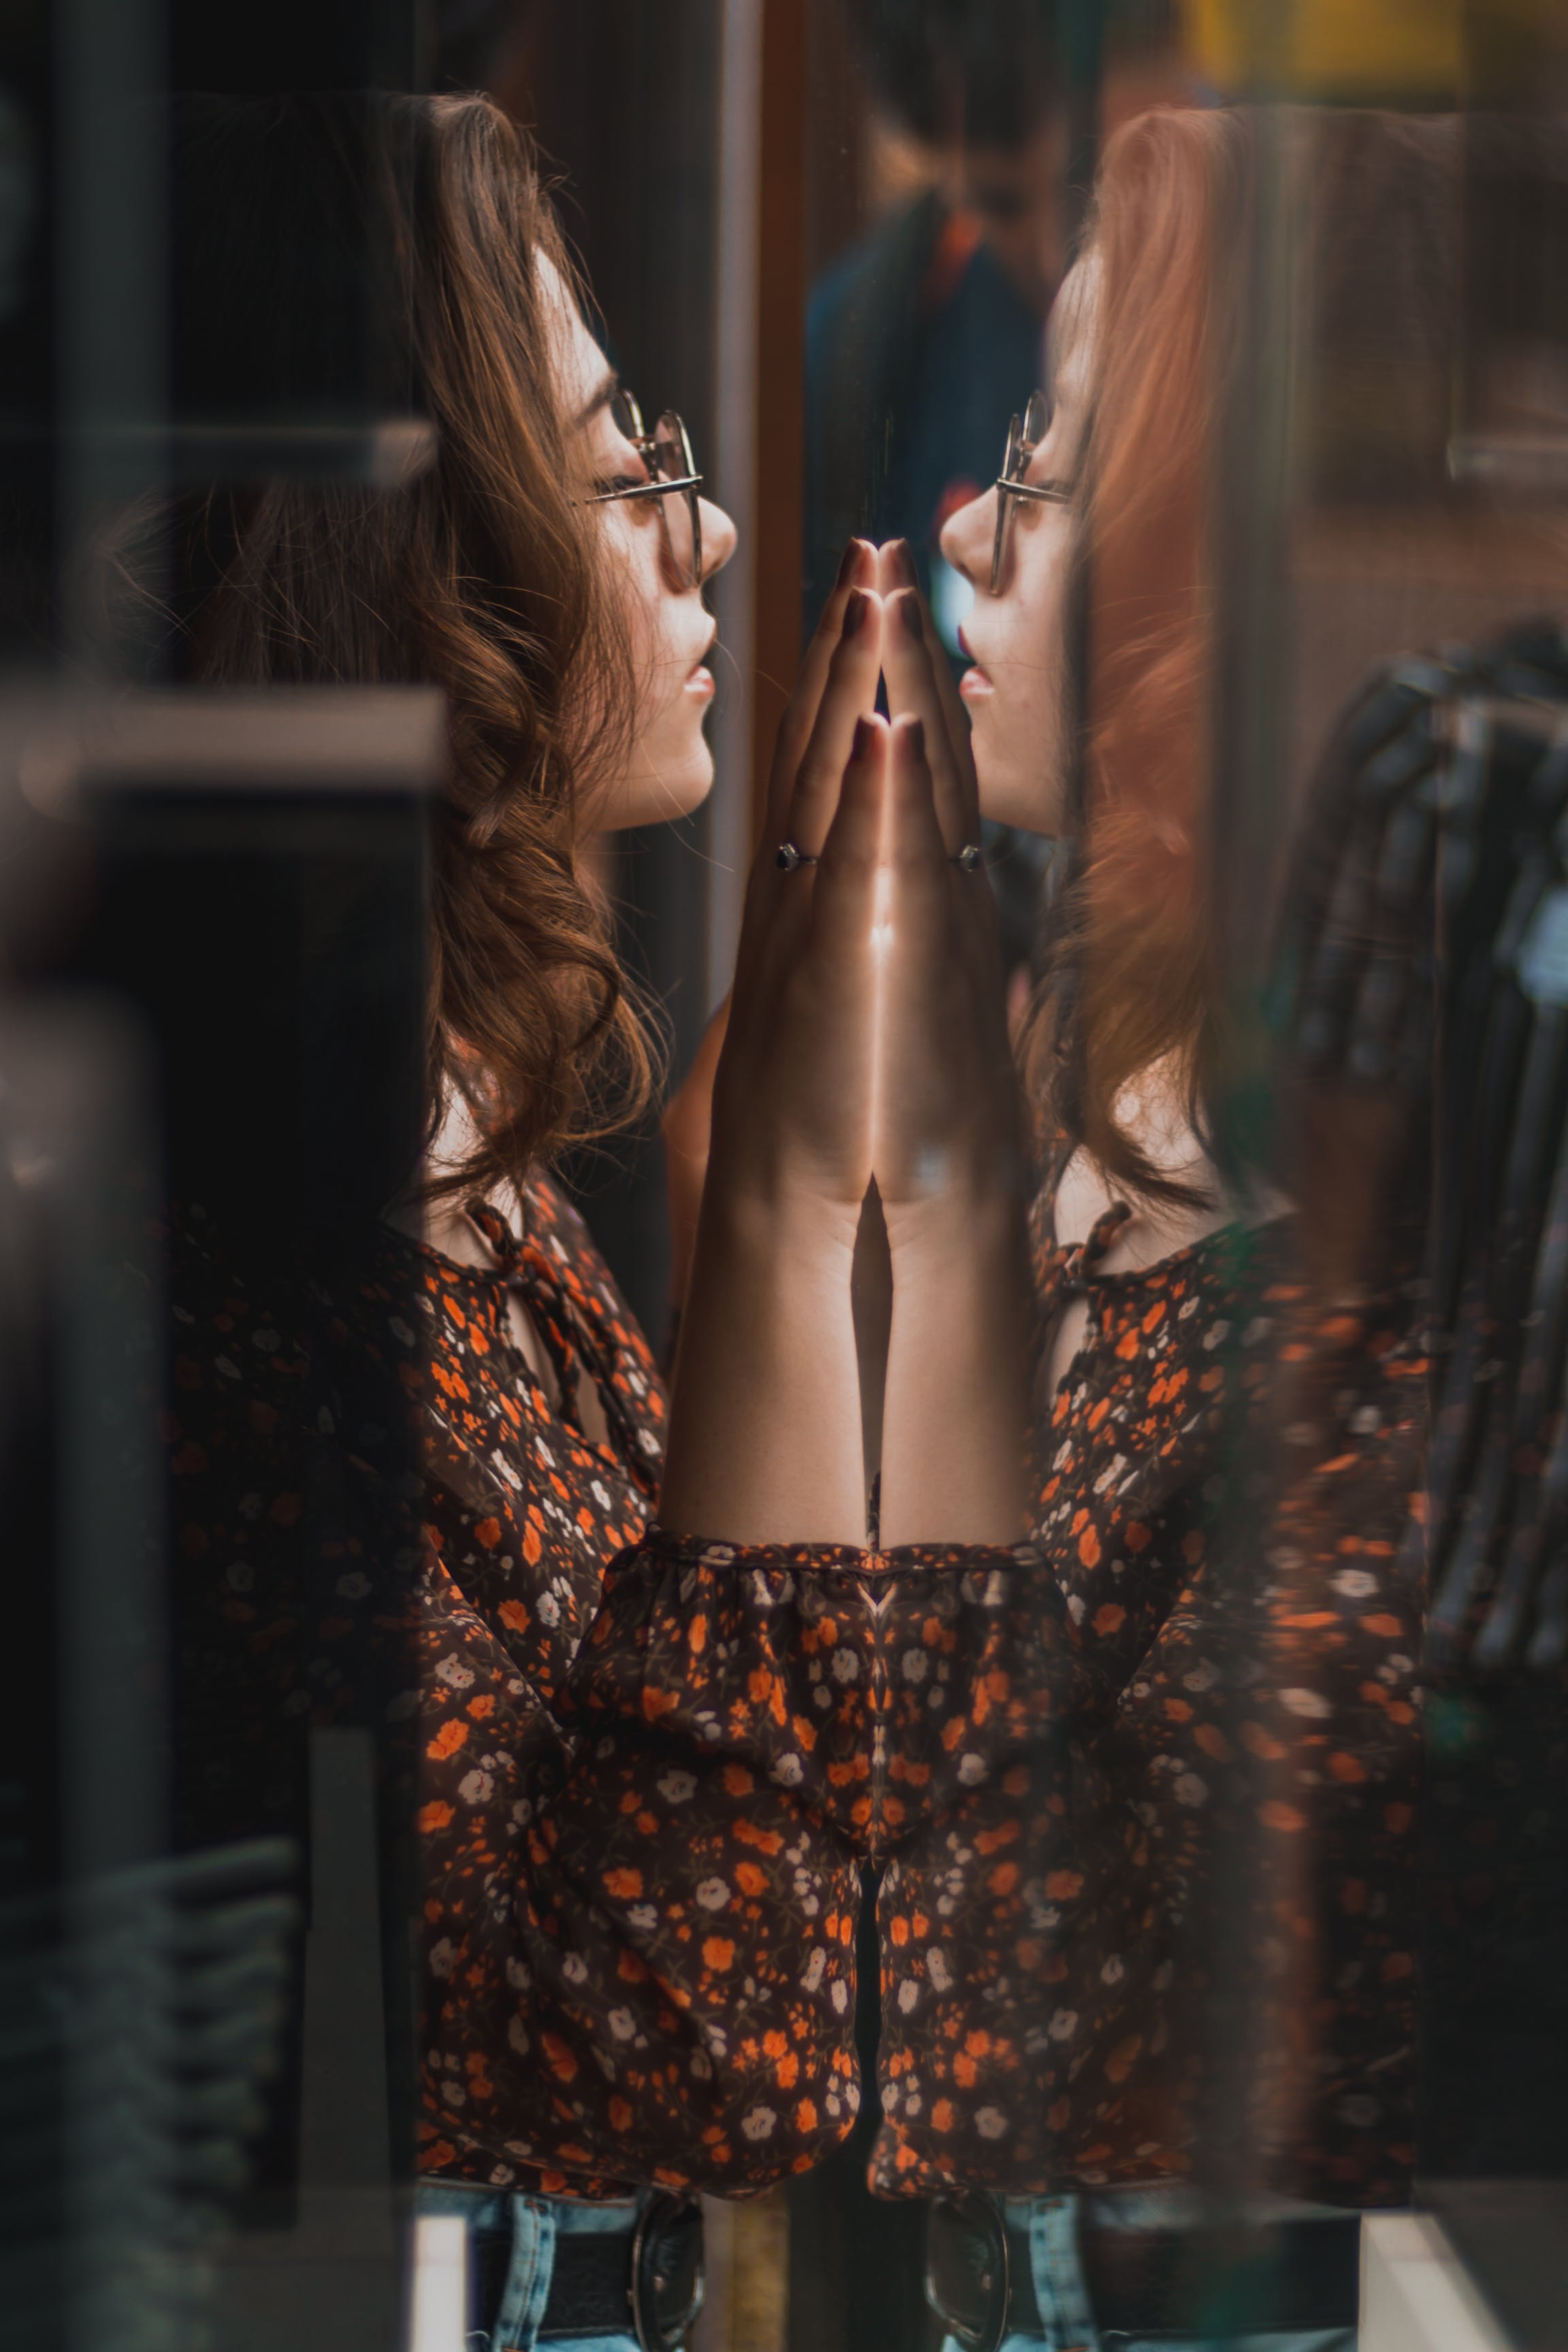 Woman With Both Hand on Glass Wall